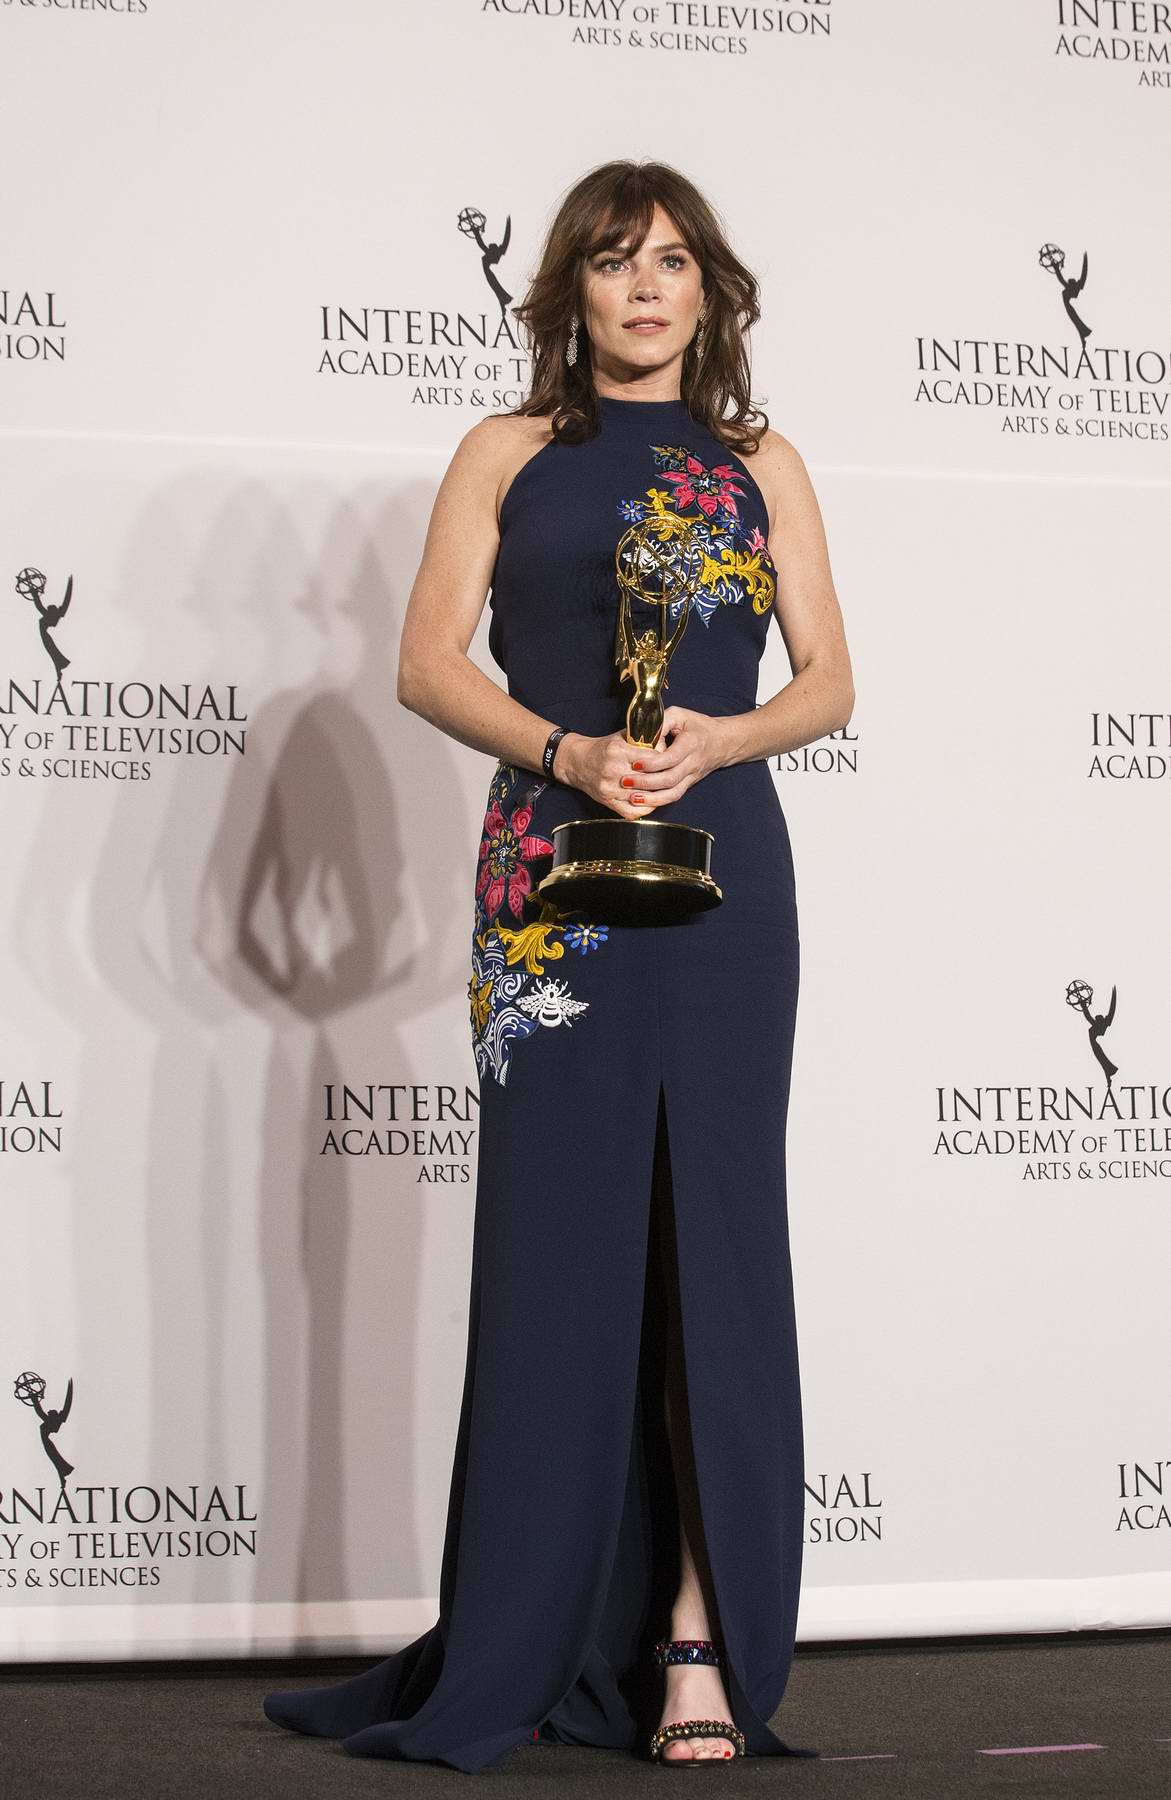 Anna Friel at the International Emmy Awards 2017 in New York